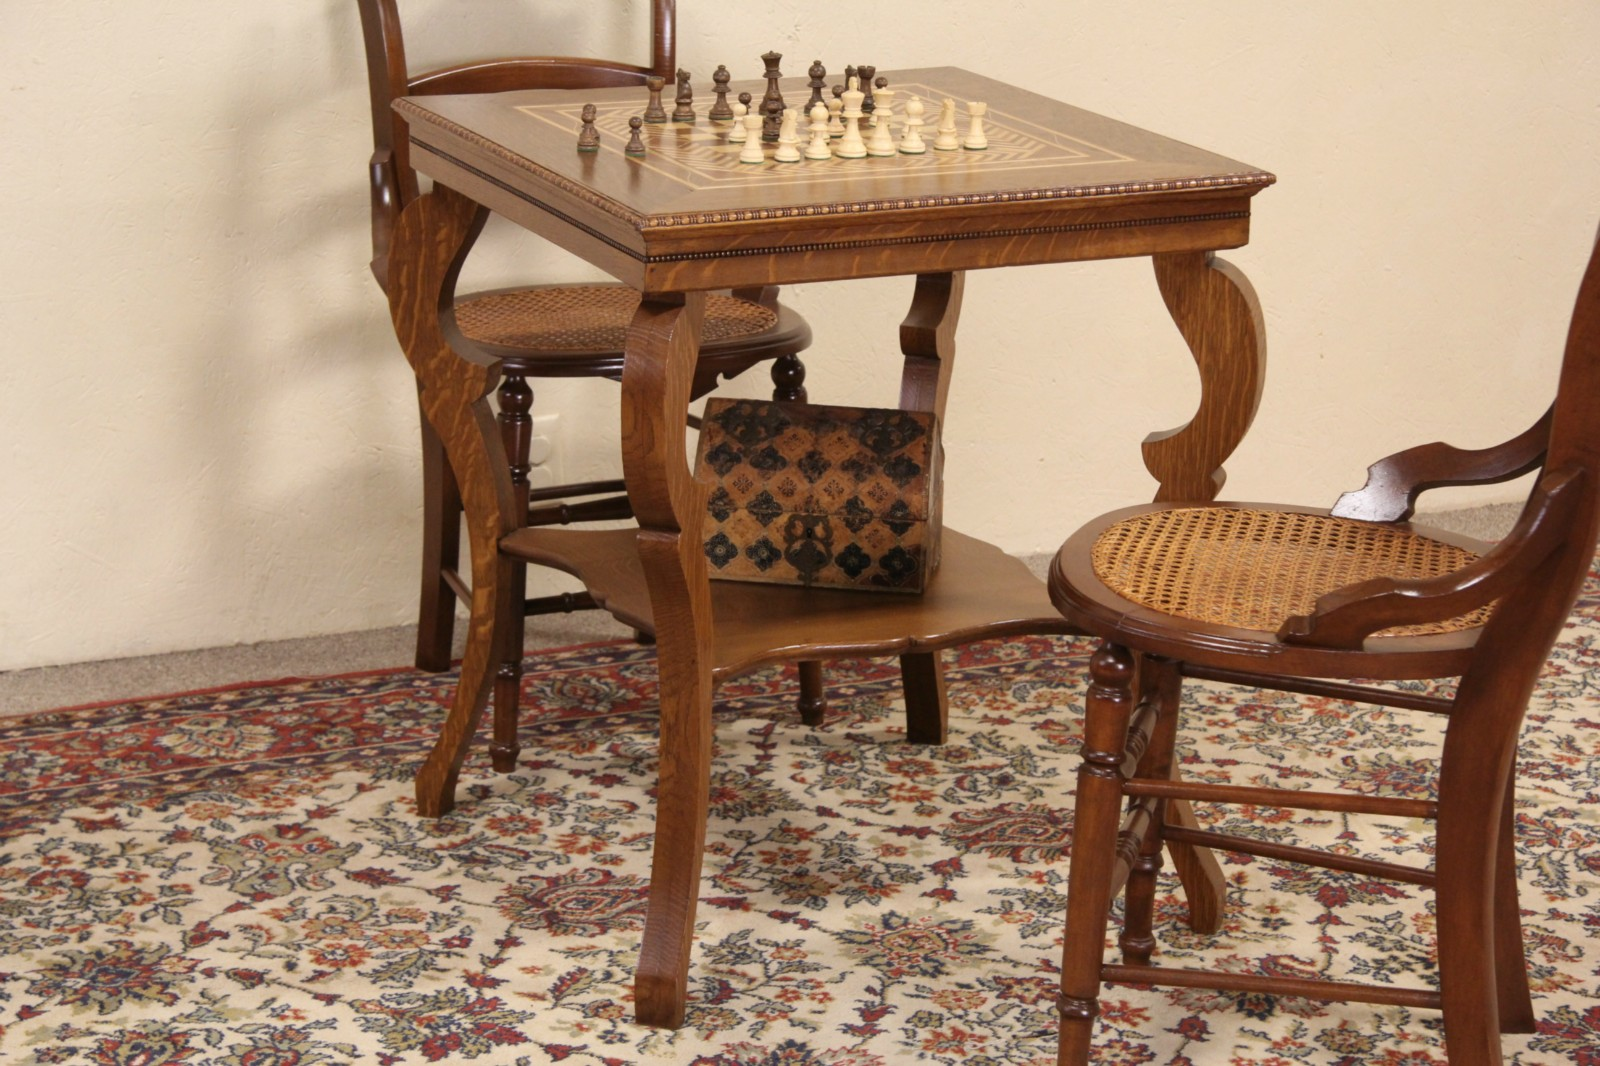 Antique game table chairs - Oak 1900 Antique Chess Or Checker Board Inlaid Game Table